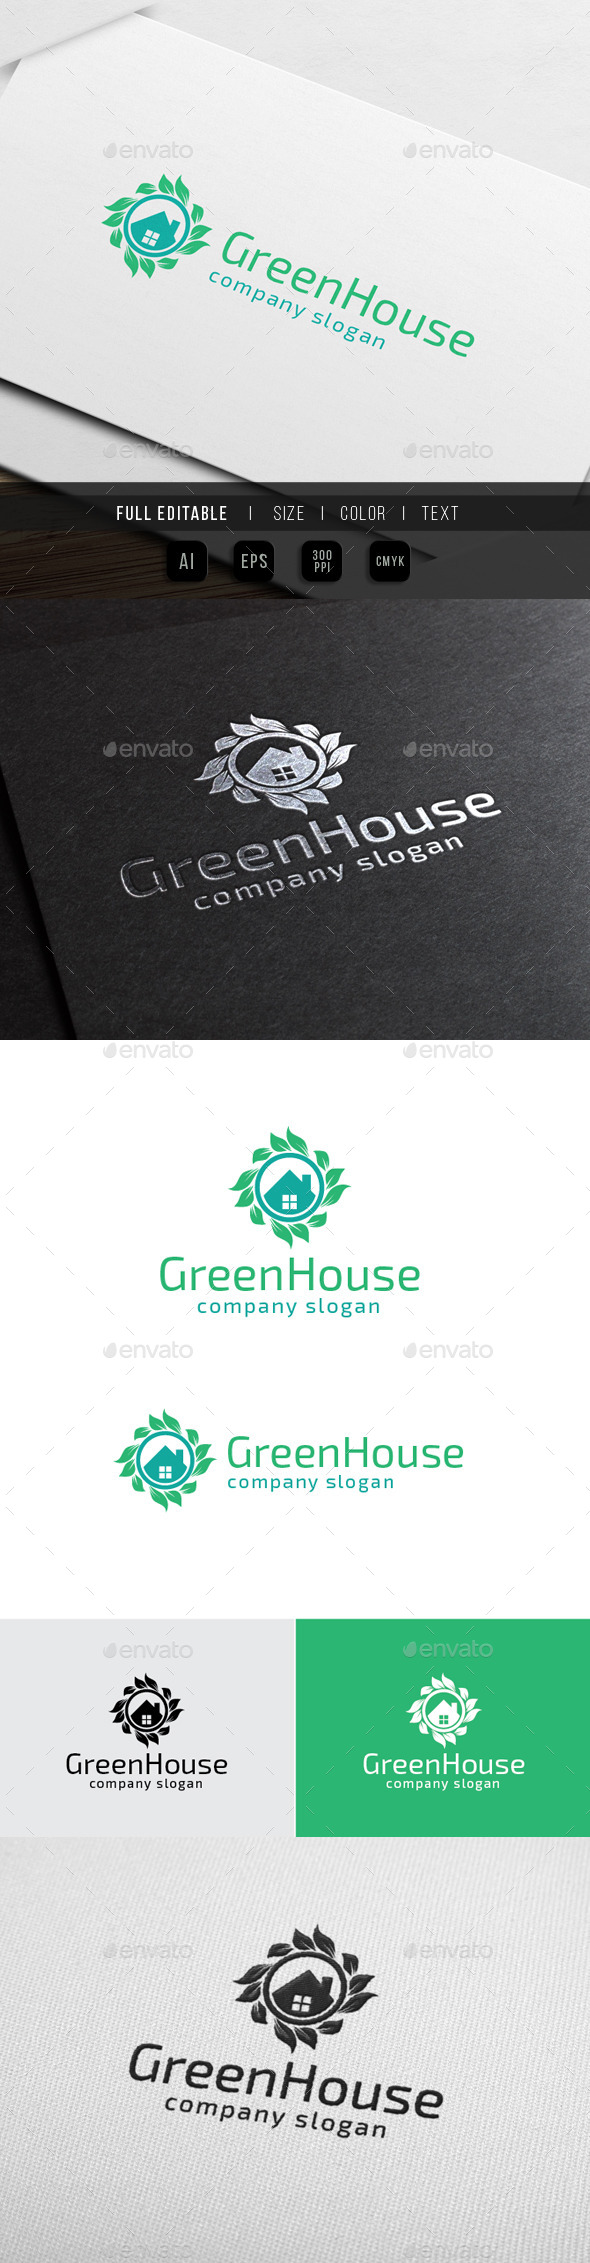 Green House - Herbal Clinic - Abstract Logo Templates